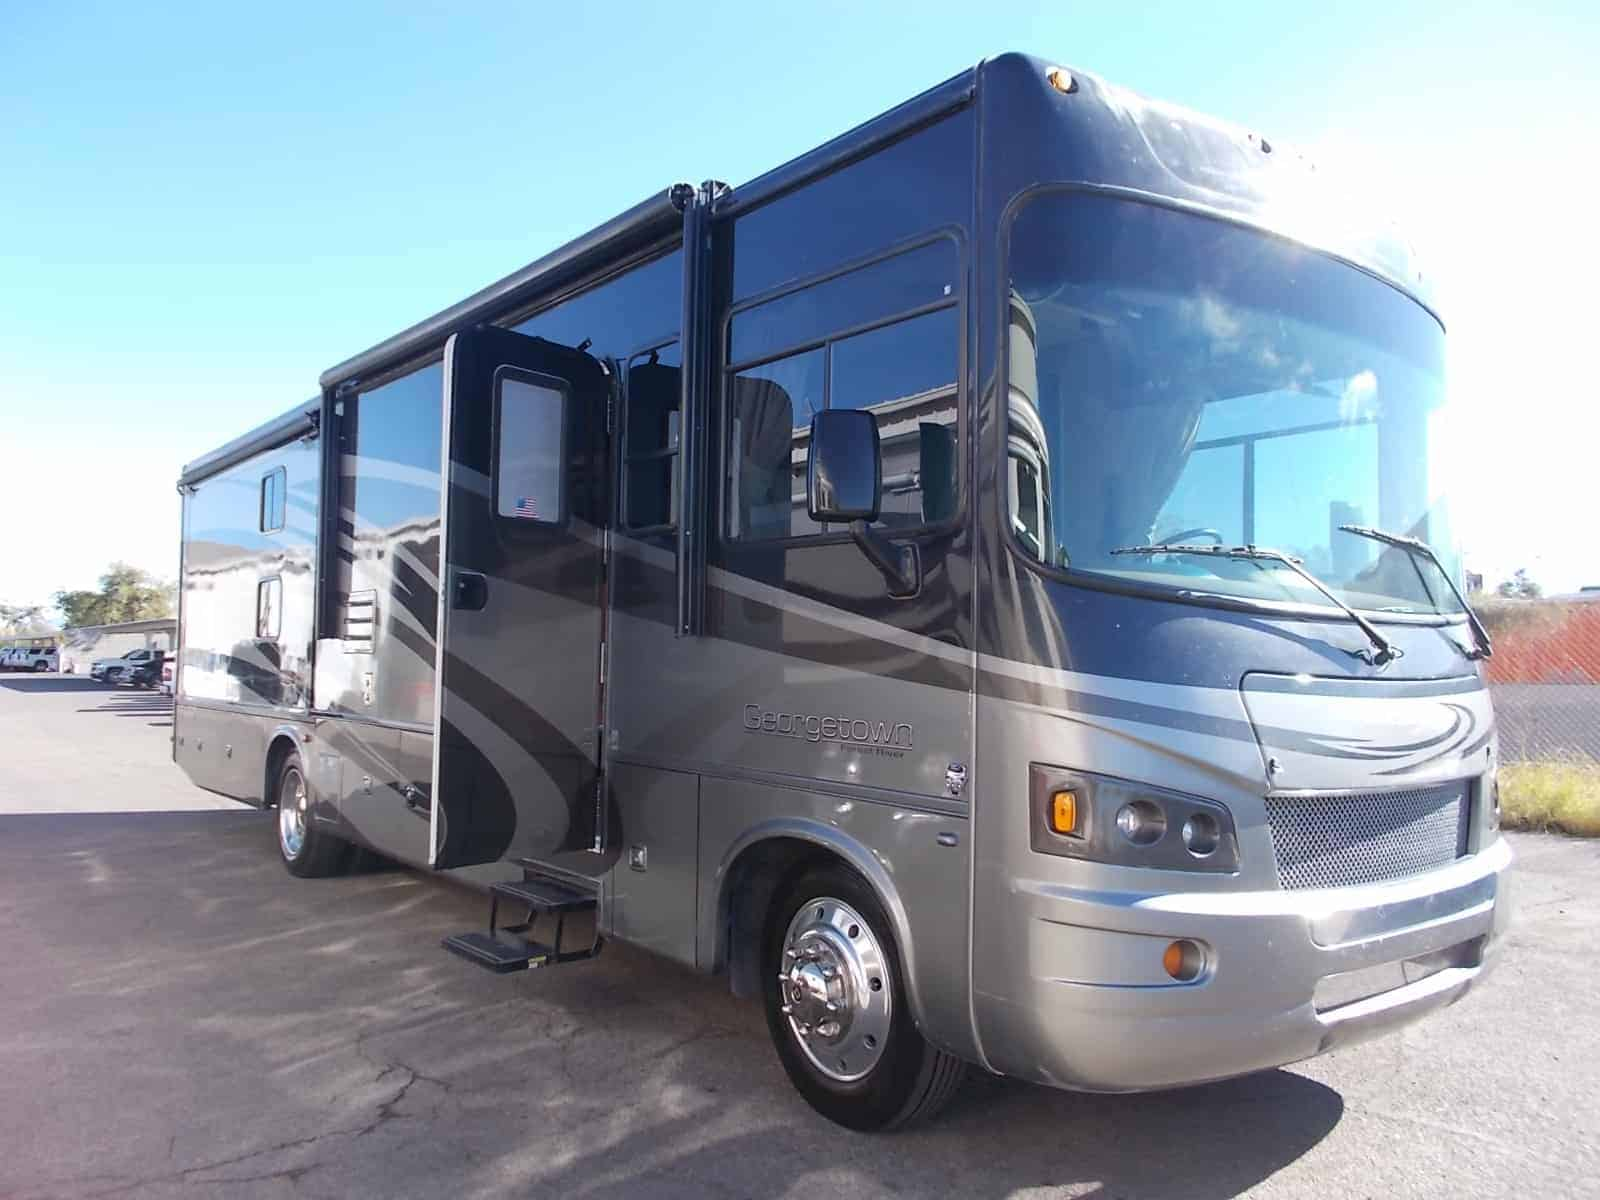 Georgetown Class A RV for rent - RV rentals Phoenix AZ - Going Places RV